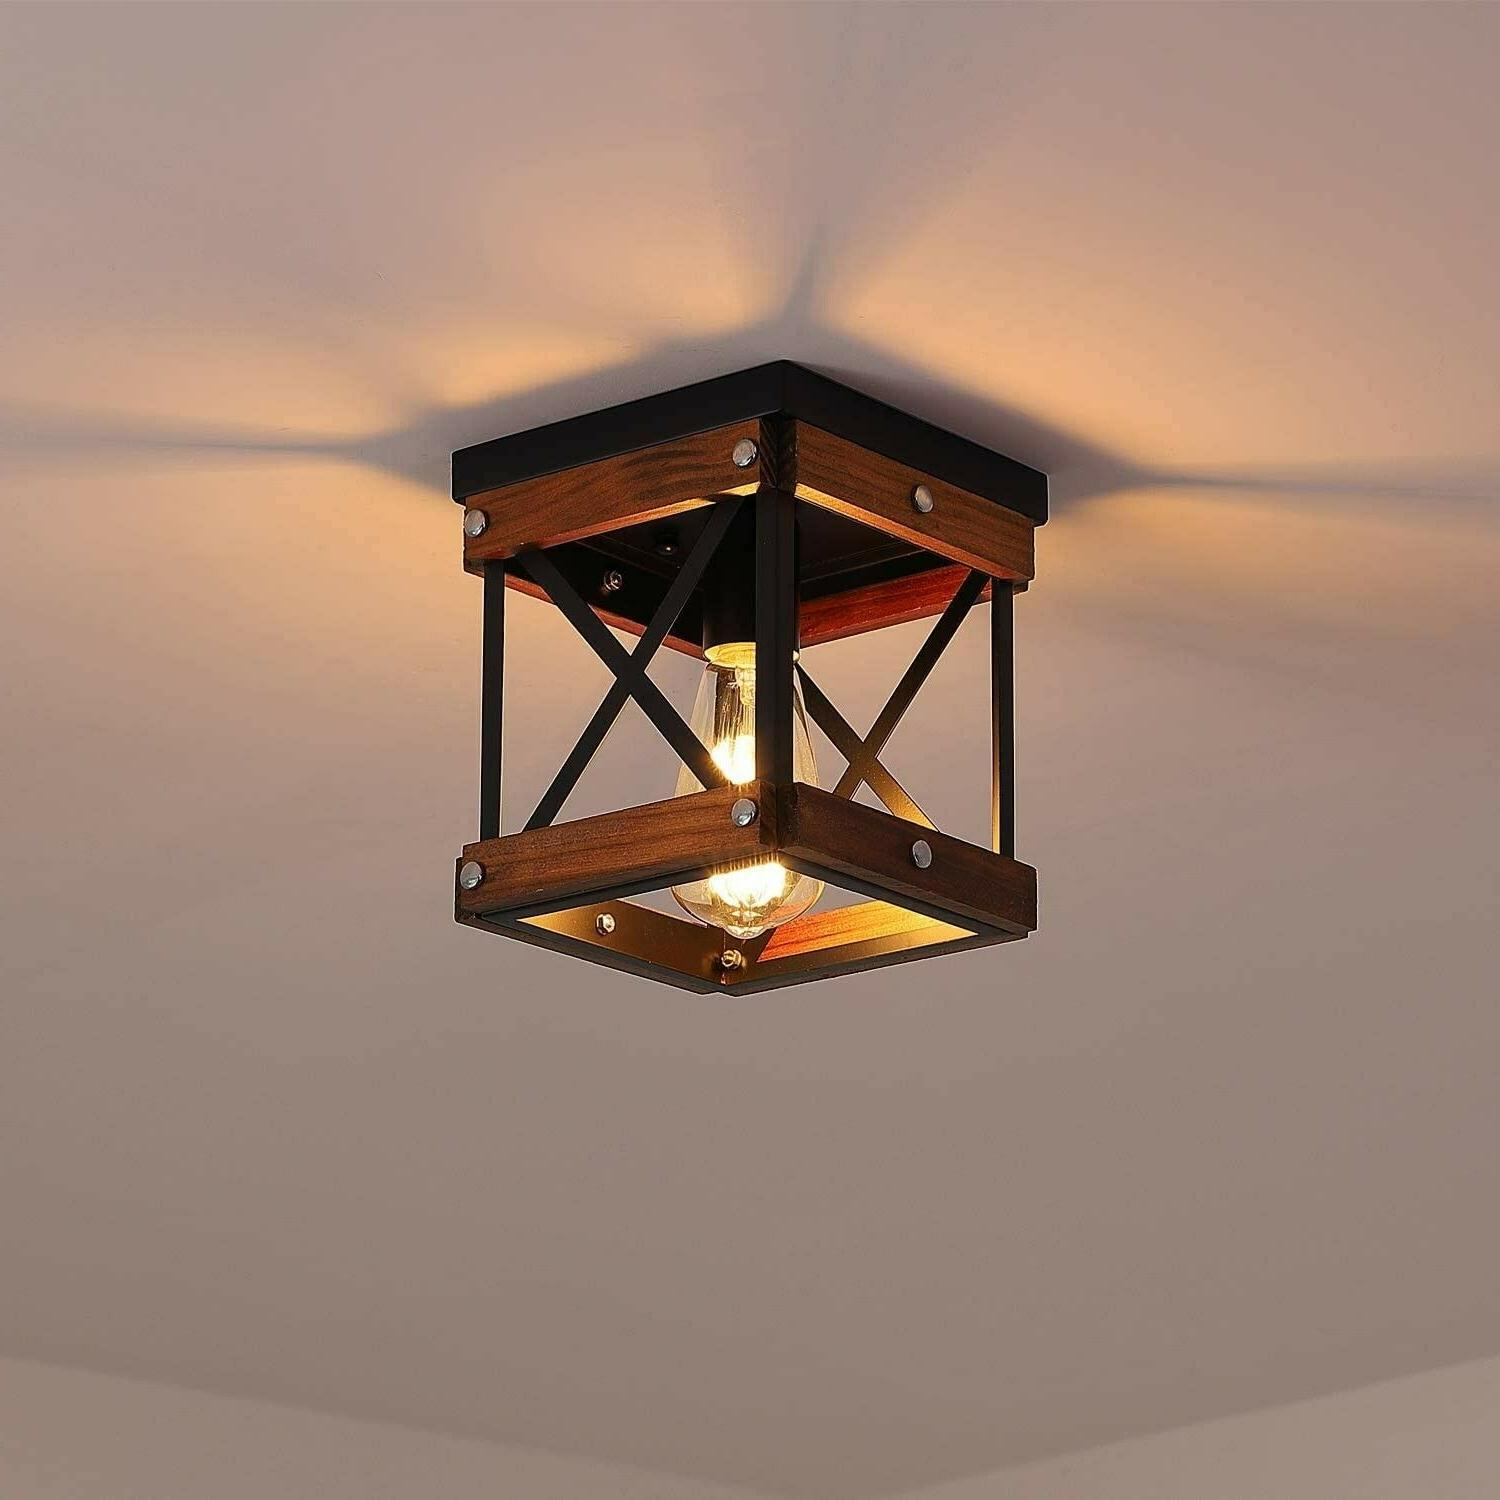 farmhouse ceiling light fixture industrial wood rustic